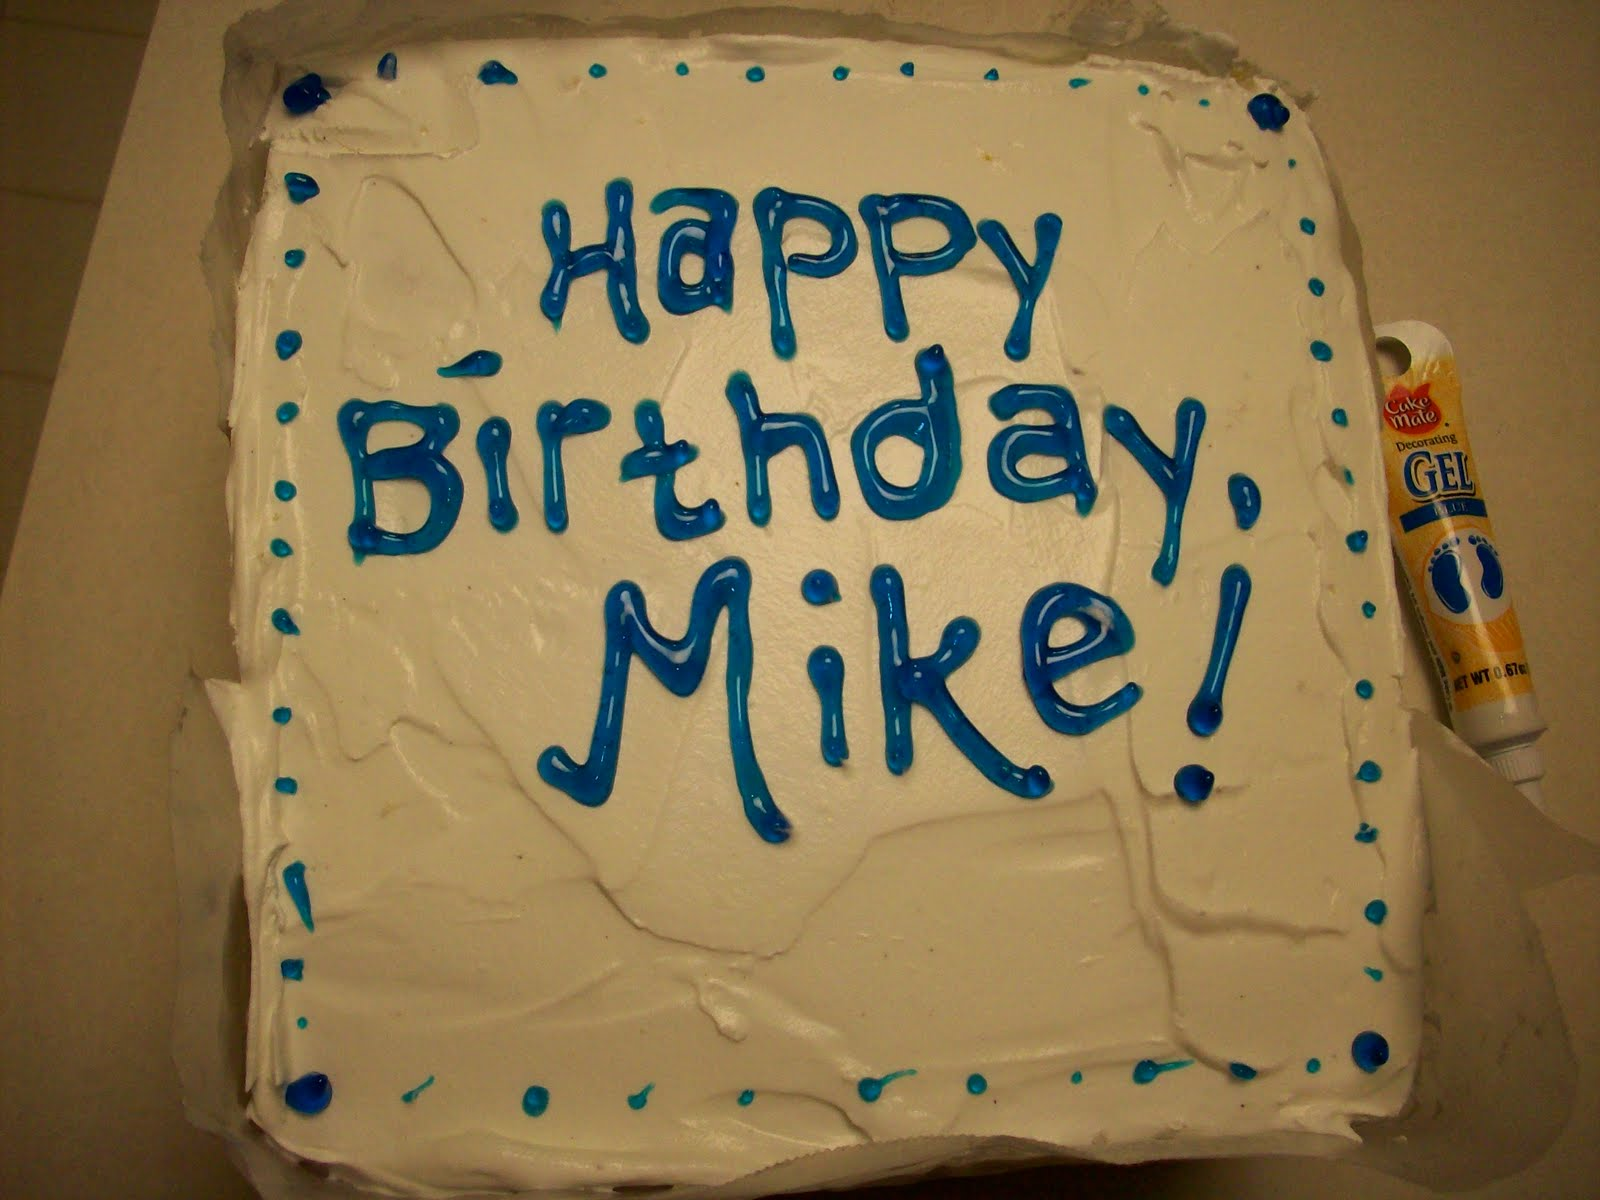 Mike Irenes Blog Happy Birthday Mike